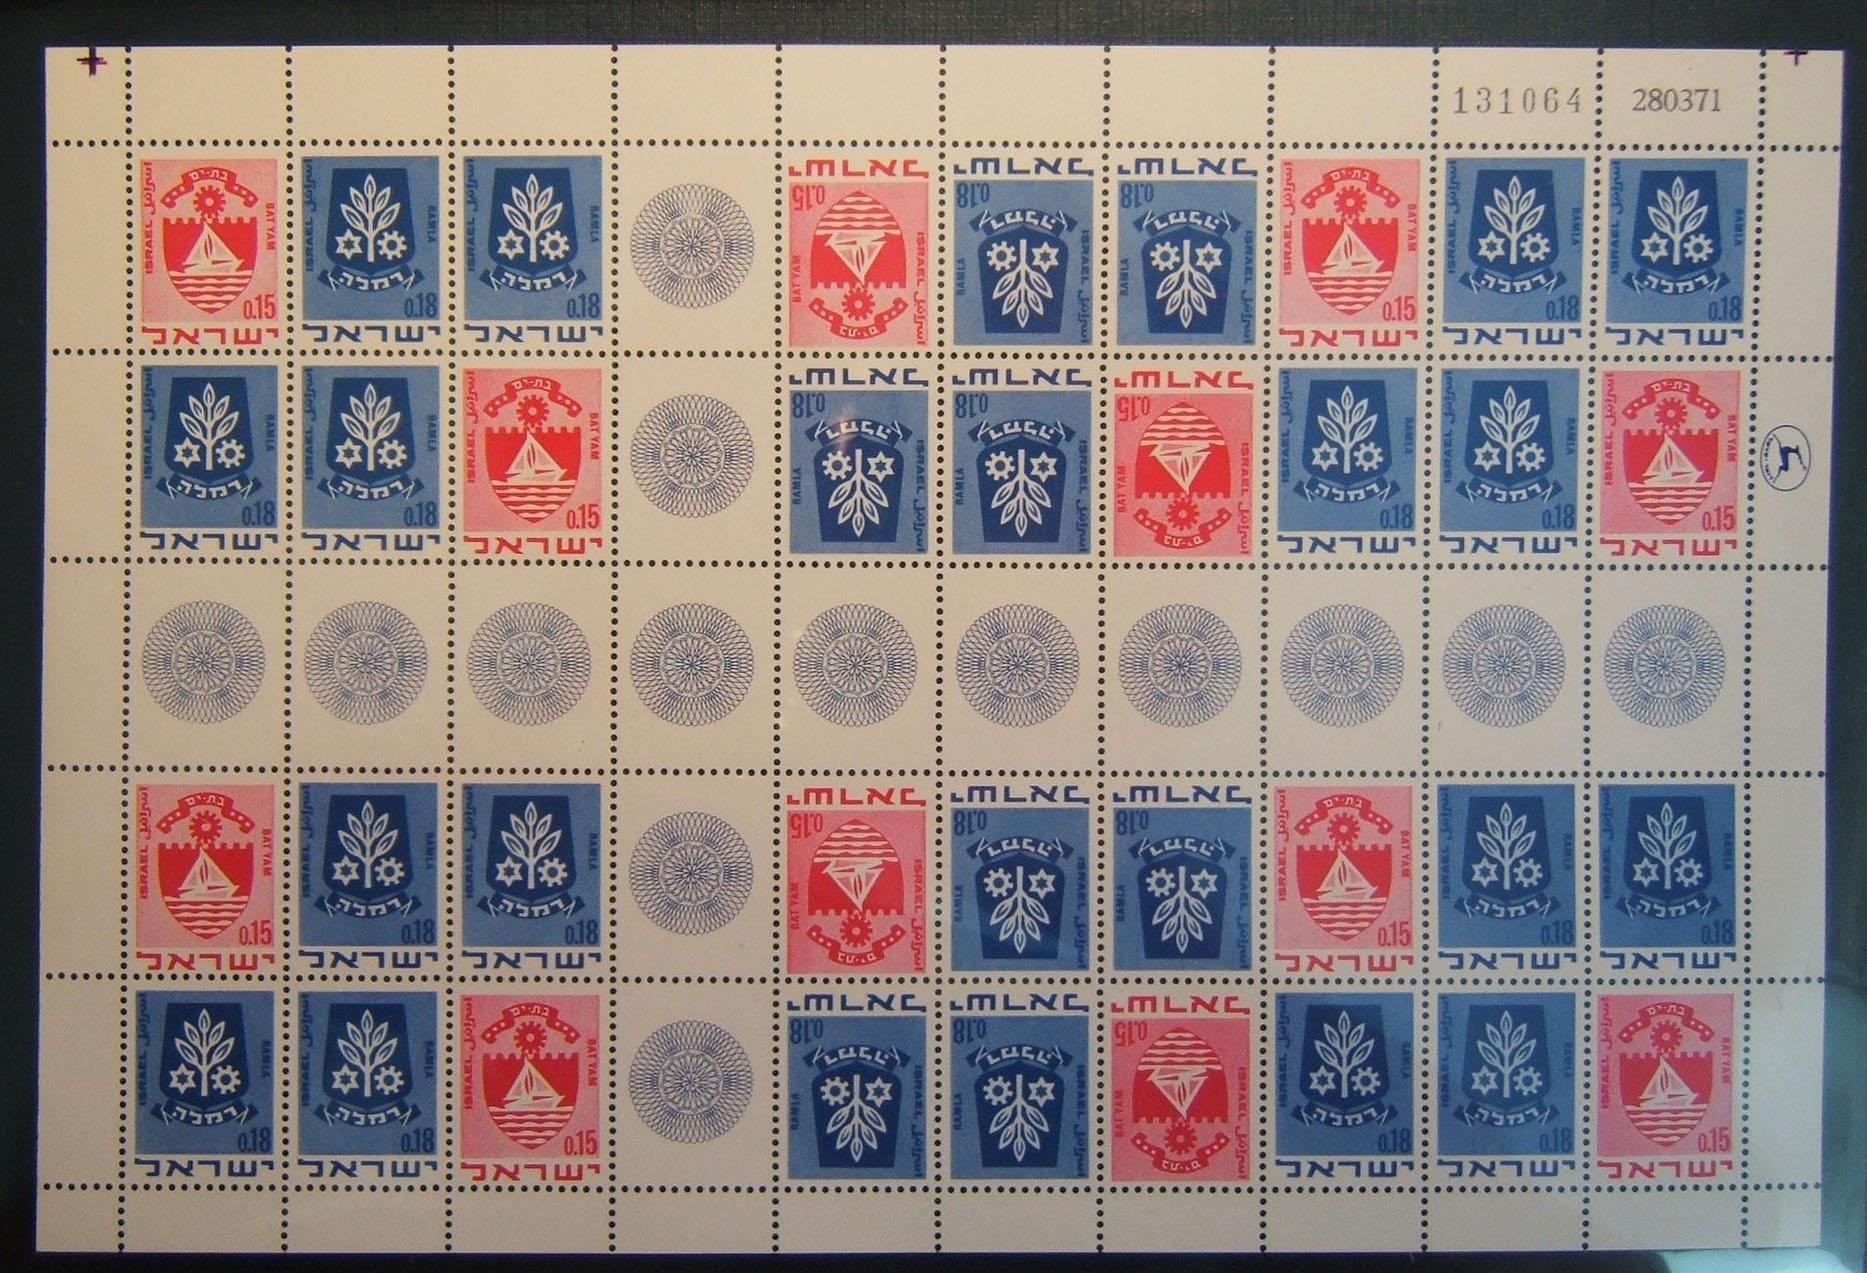 1969 2nd Town Emblems 0.15£+0.18£ tete beche sheet (Ba IrS.23), MNH